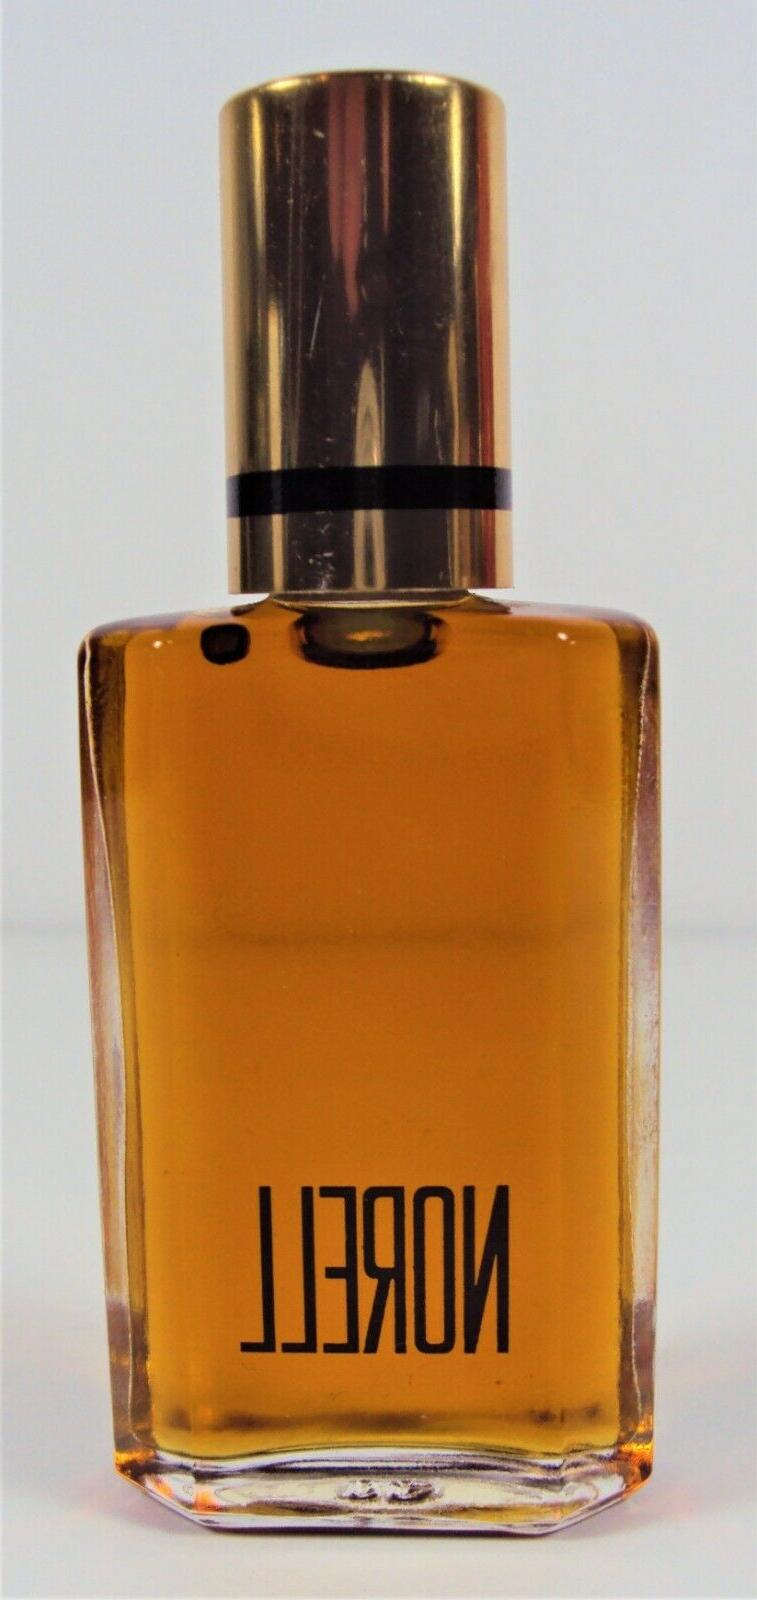 norell parfumed bath oil by fragrances 5